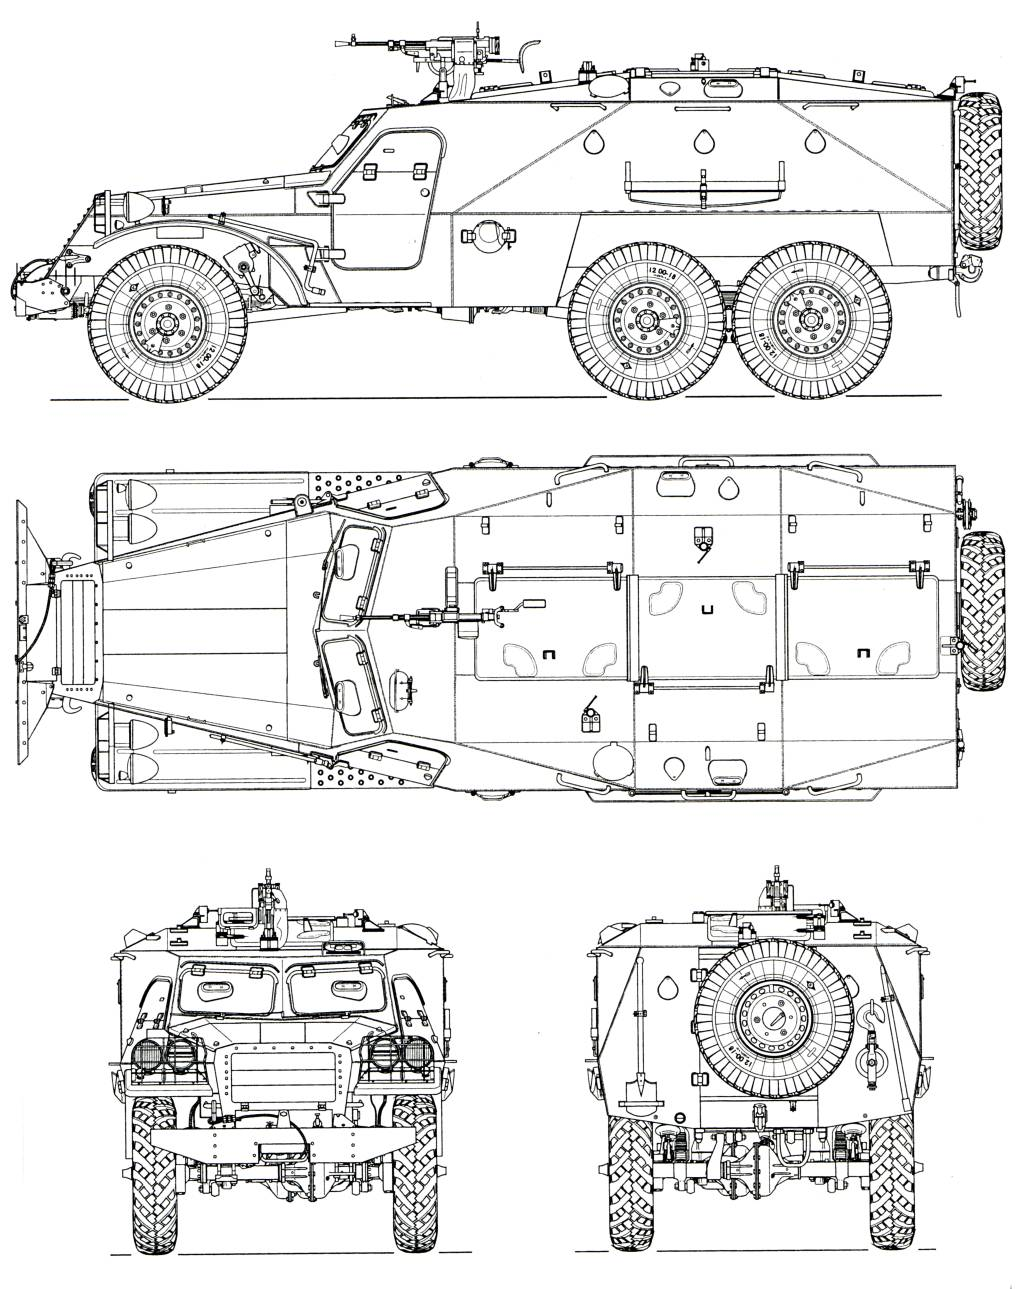 BTR-152 blueprint